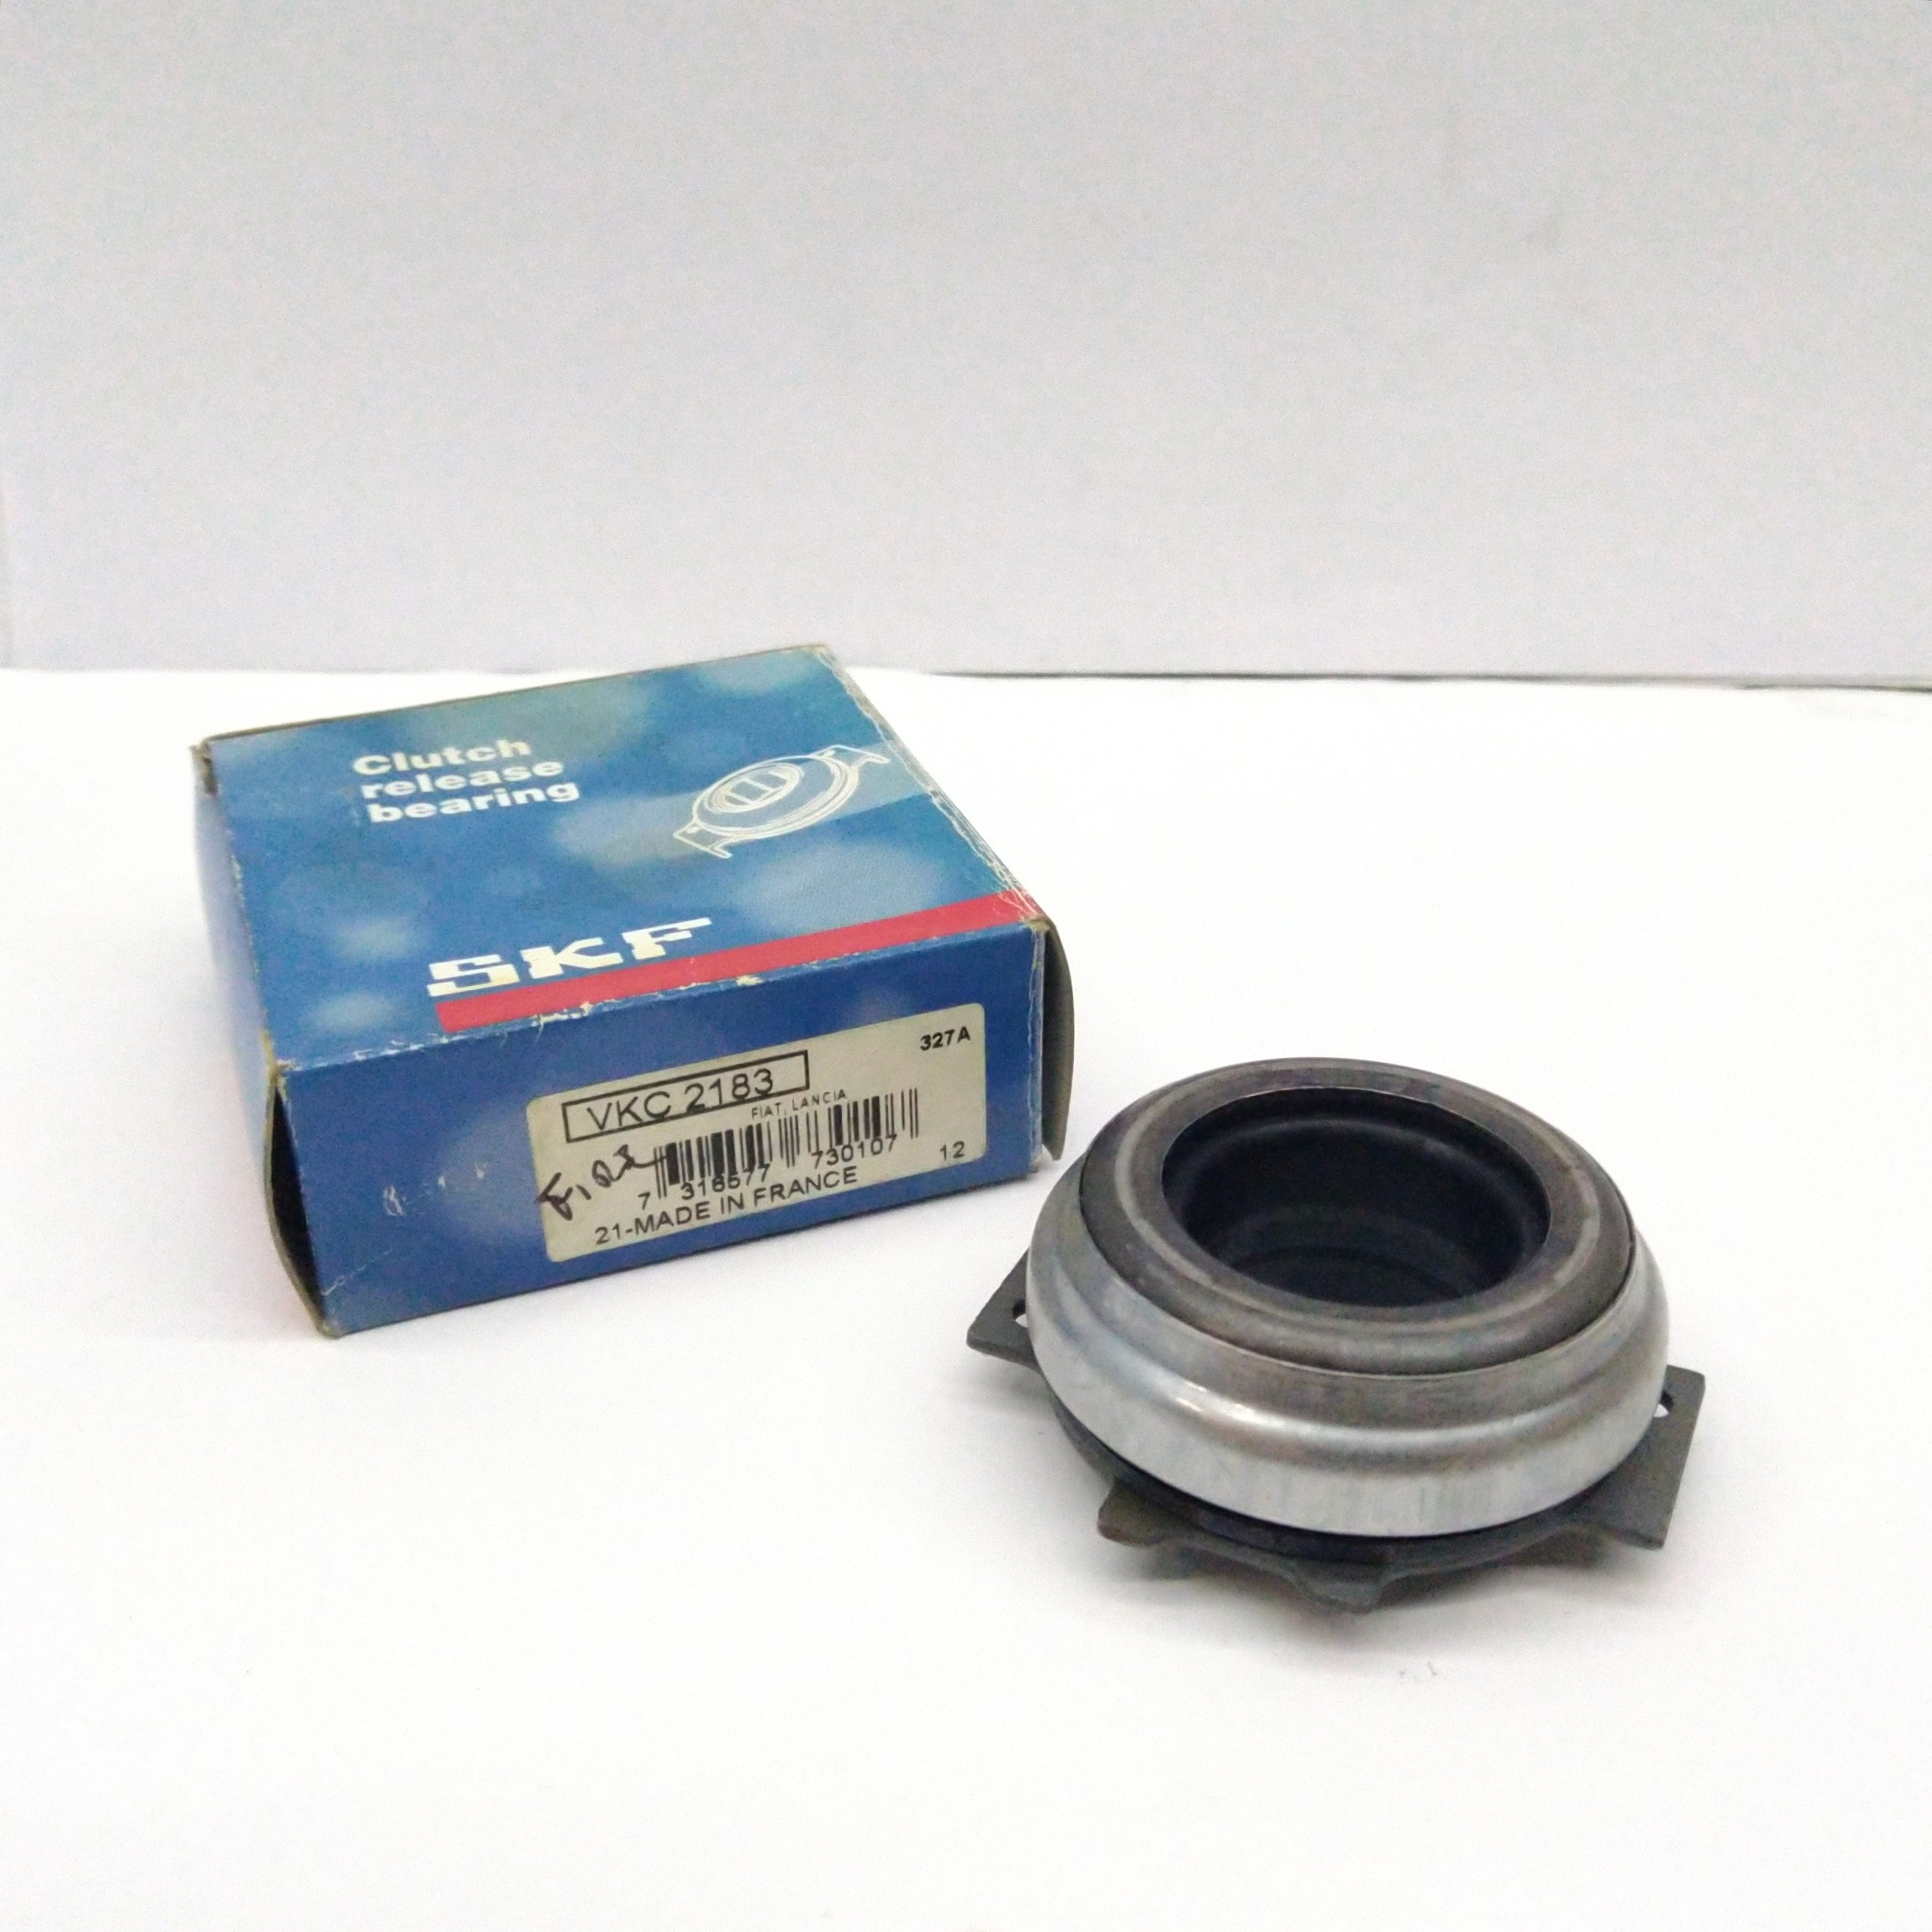 THRUST RELEASE CLUTCH FIAT PANDA - PALIO - LANCIA Y SKF FOR 46466726